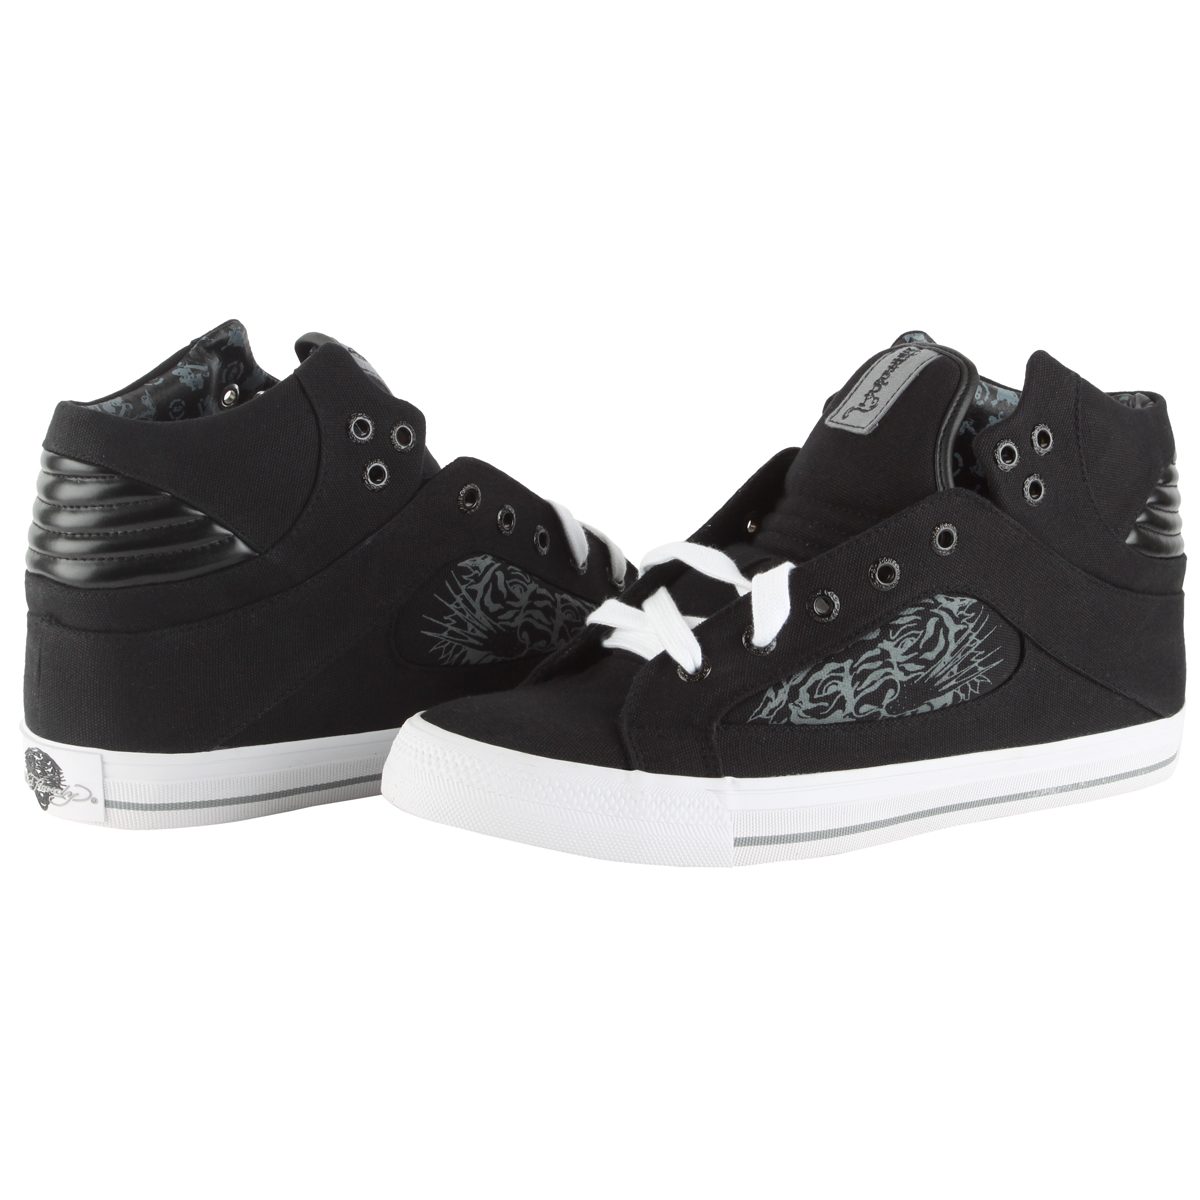 Ed Hardy Pendelton Highrise Shoe for Men - Black